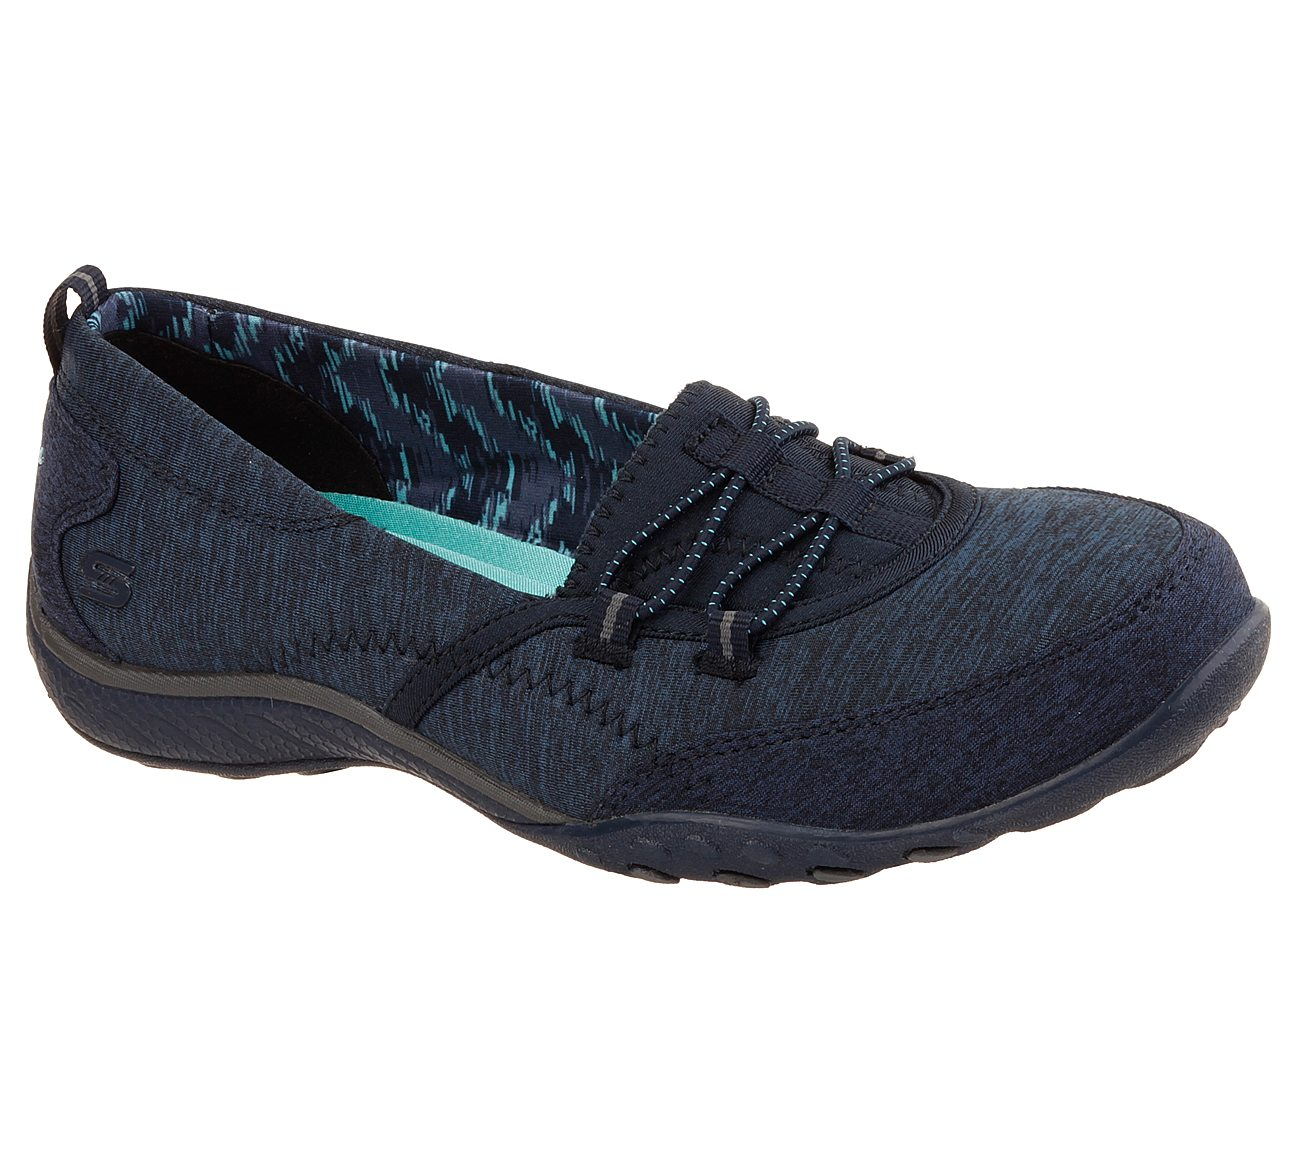 skechers relaxed fit review